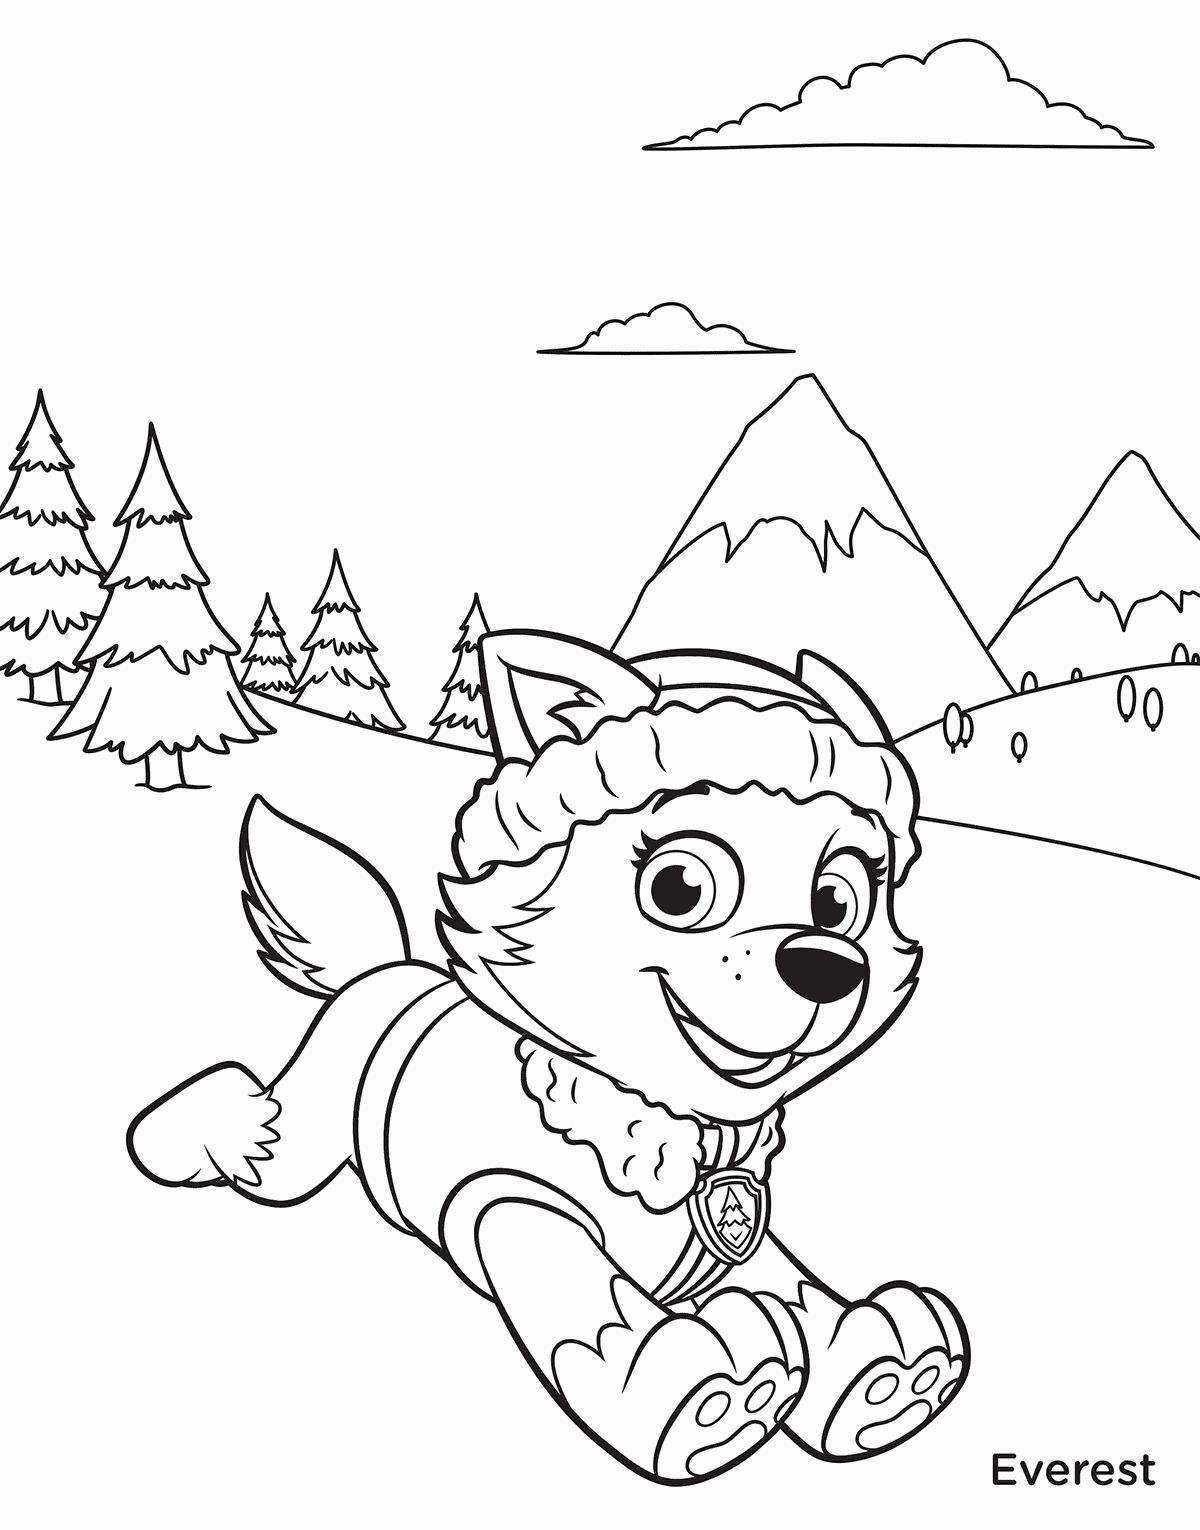 everest coloring page coloring pages everest vbs coloring pages new 100 page coloring everest